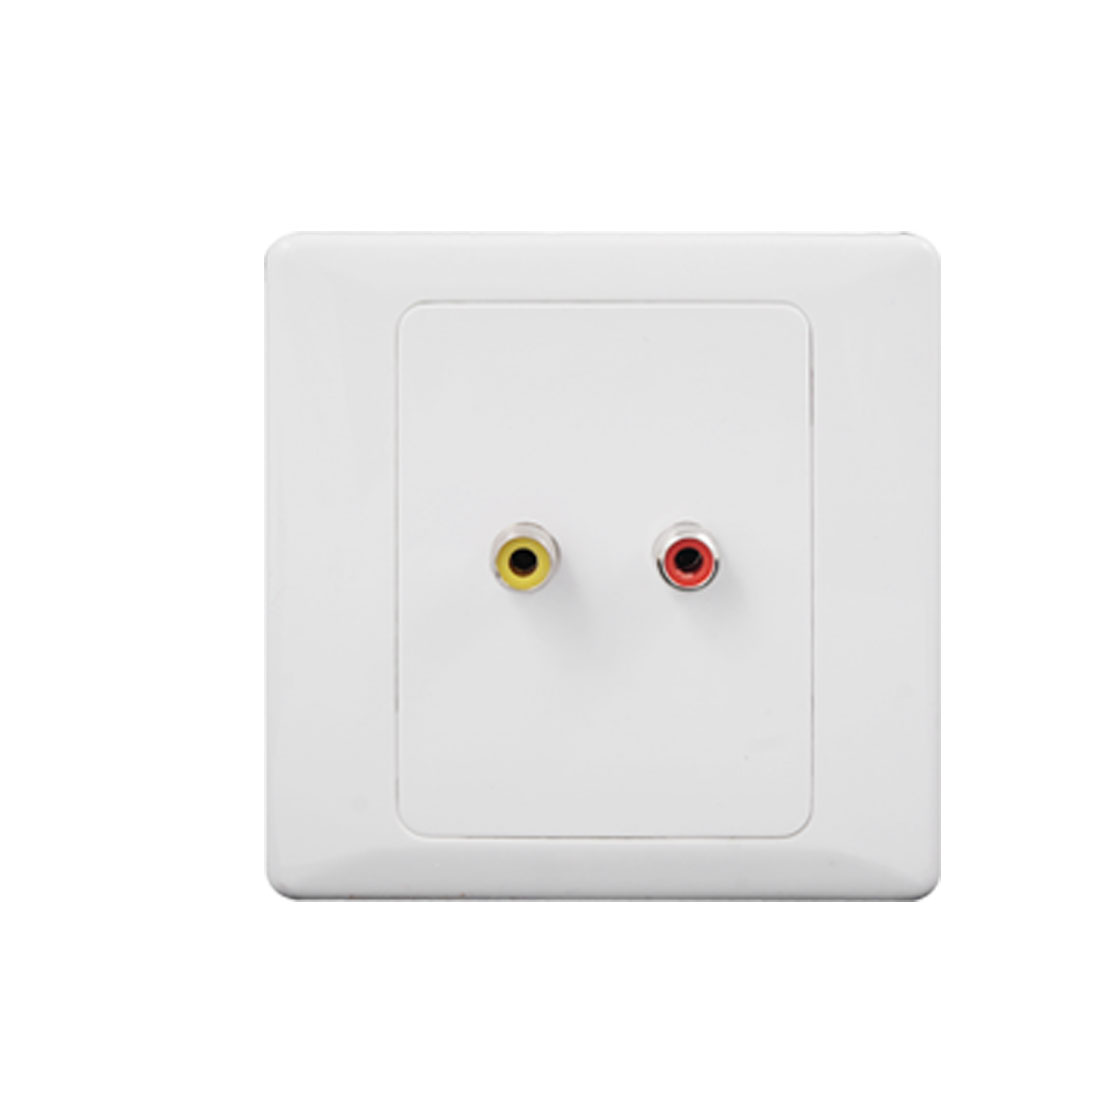 Video Audio RCA Female Port Double Socket Wall Plate